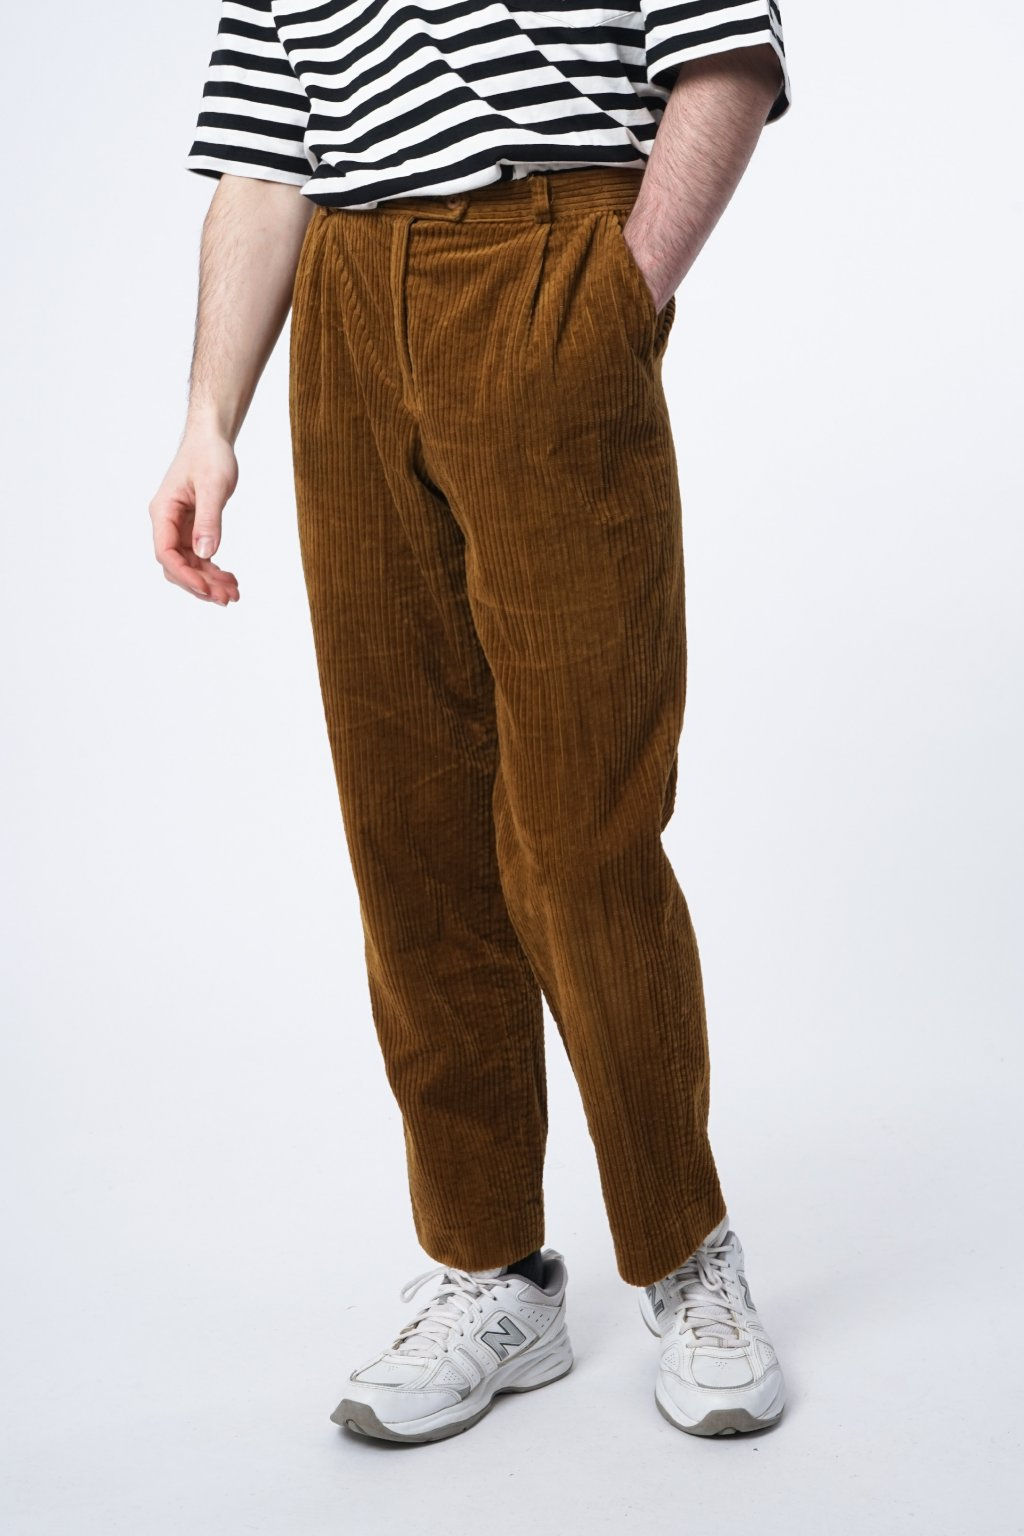 Corduroy trousers (38)